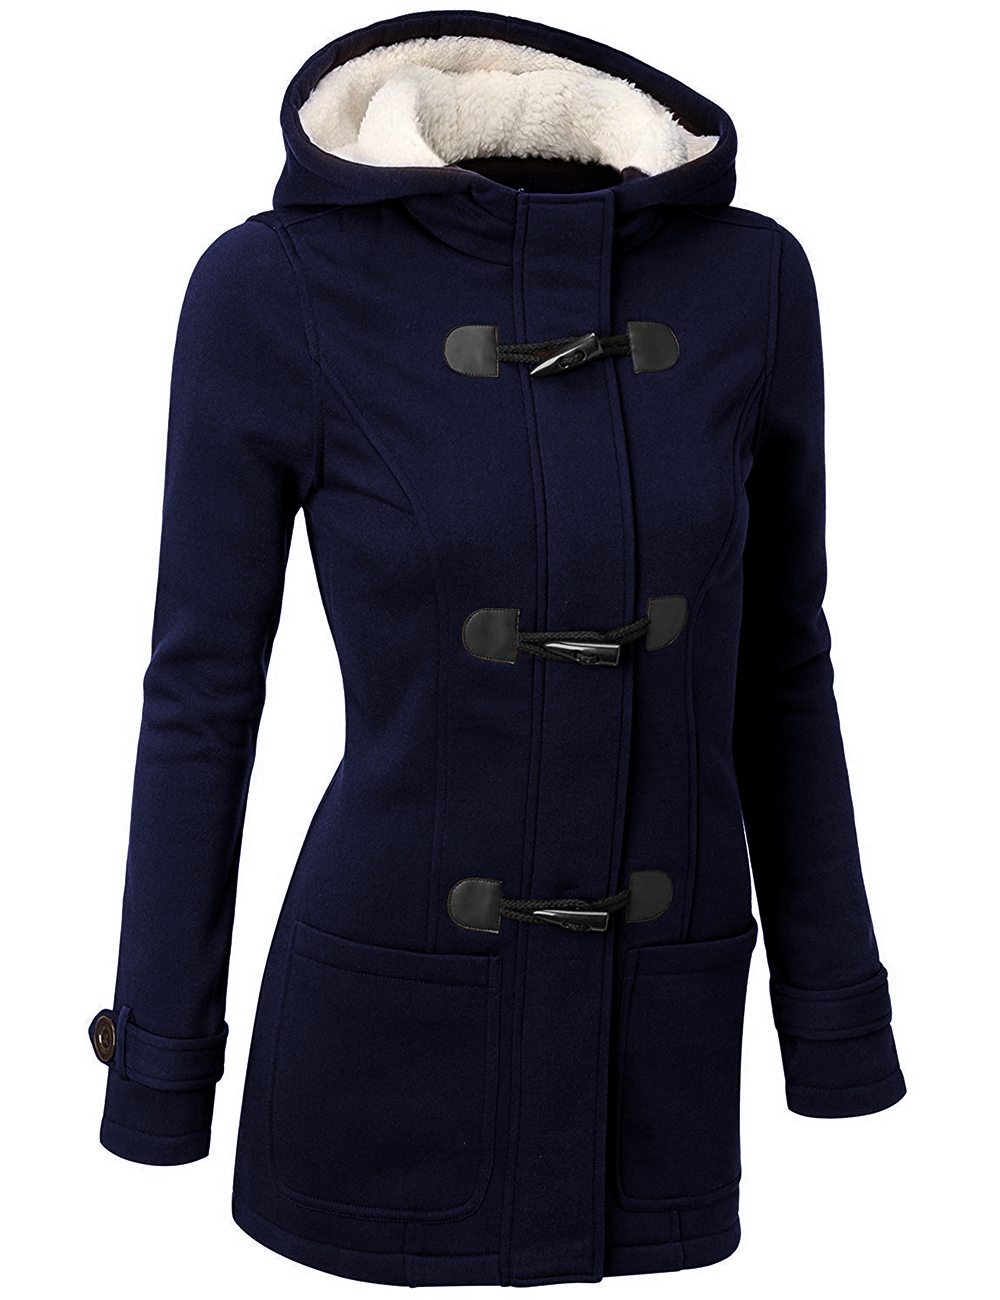 Women Cotton Overcoat 2019 Winter Casual Horn Button Hooded Blend Outwear Fashion Pocket Solid Buckles Female Coat Plus Size 4